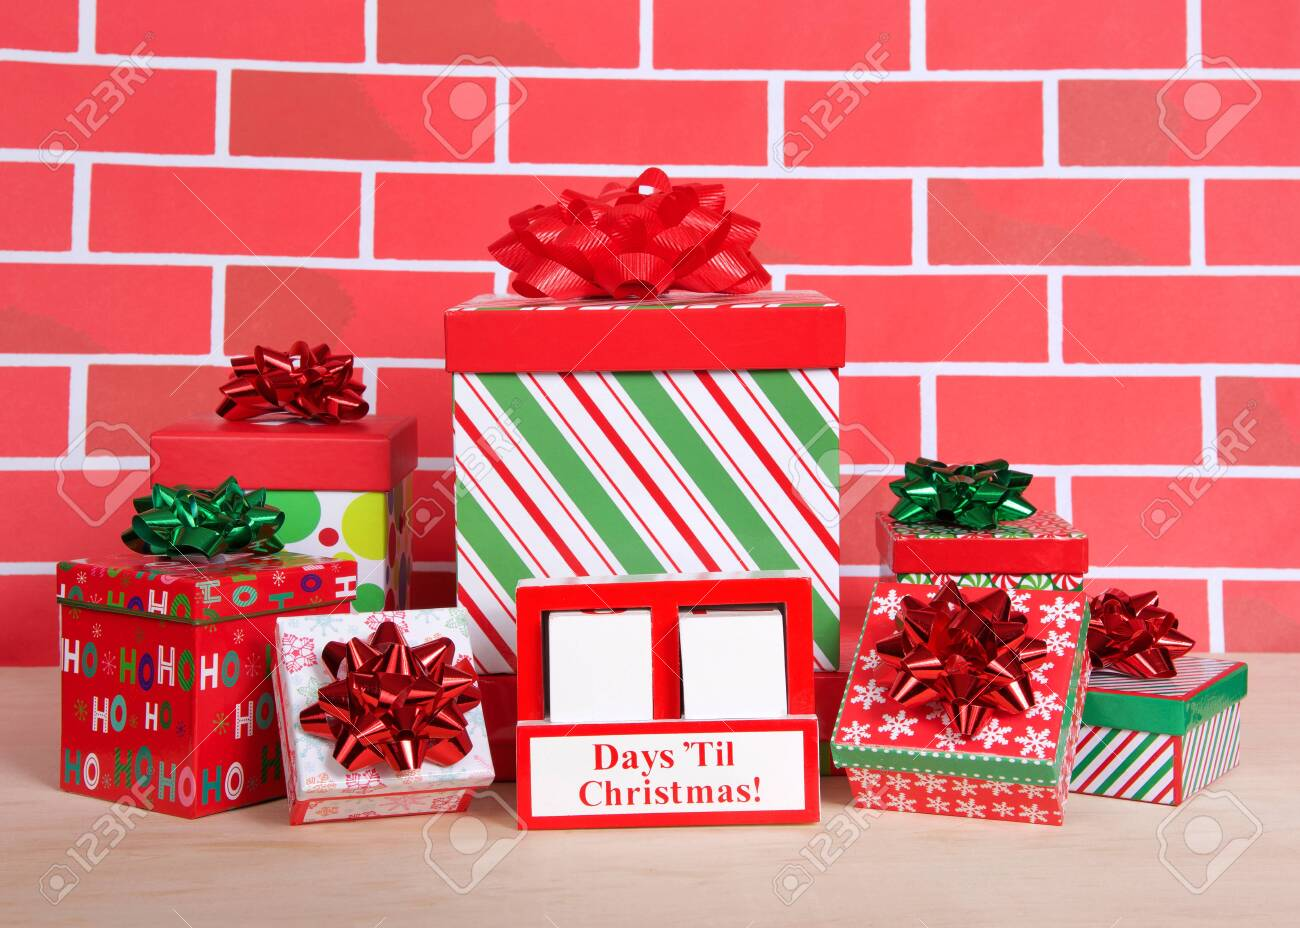 How many days til Christmas white wood blocks in a red box with presents stacked around it sitting on a light wood table with cartoonish brick wall background. Count down blocks blank to fill in days. - 154446988